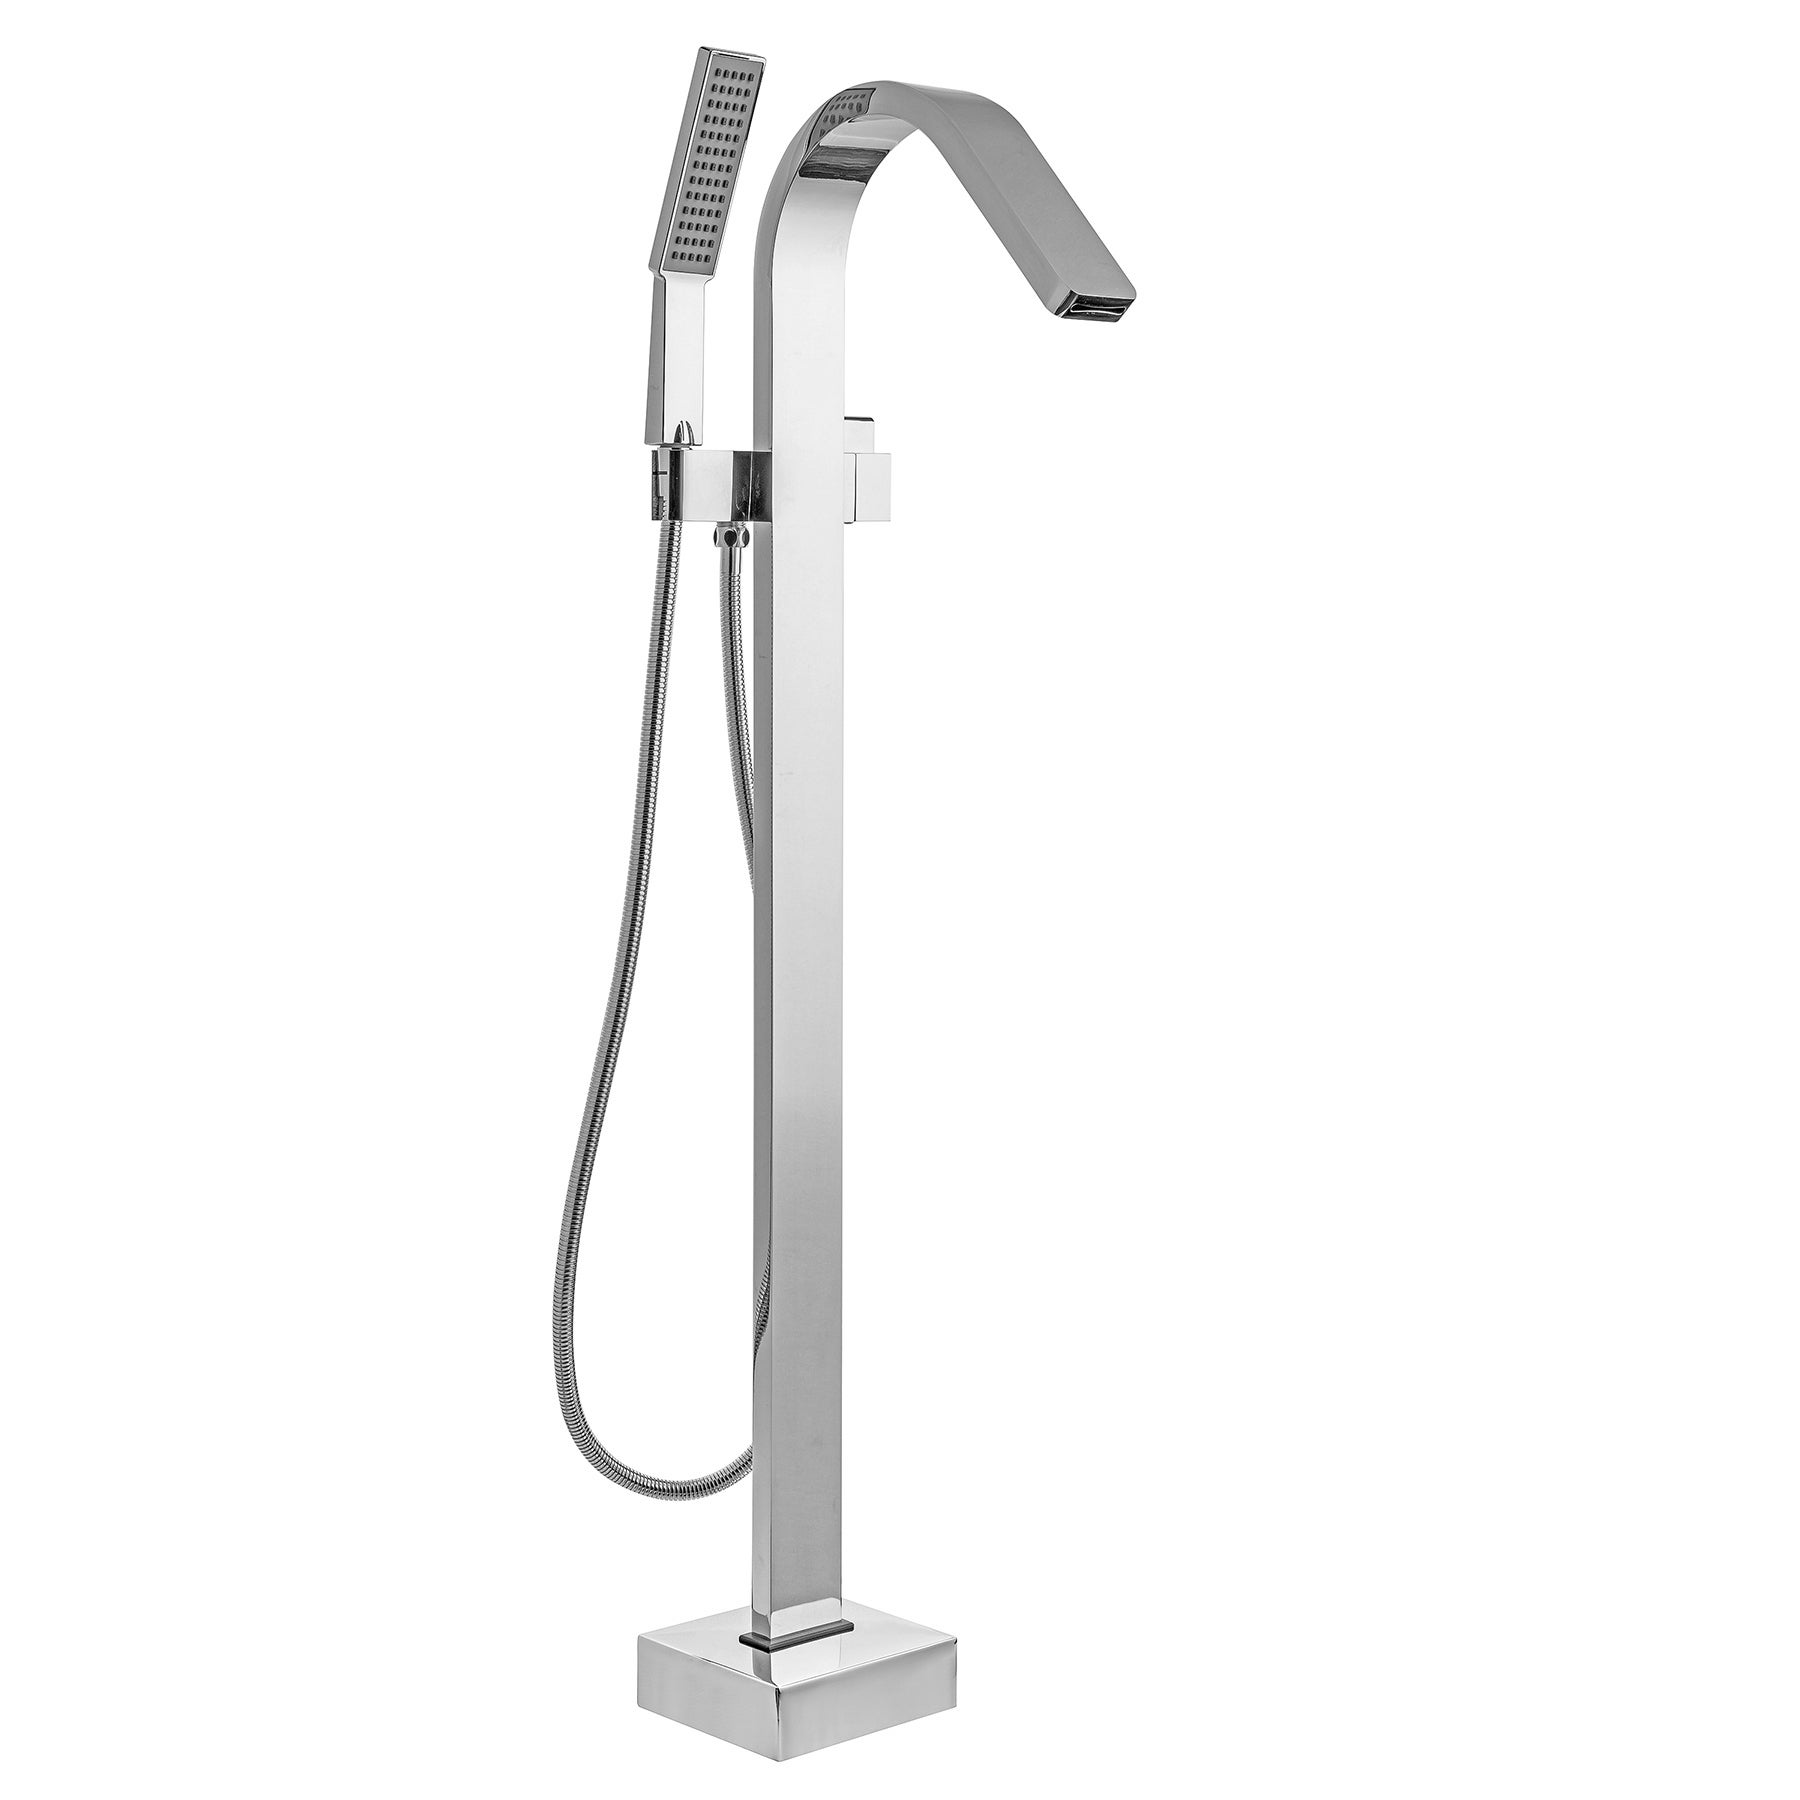 Akdy 41 Freestanding Floor Mounted Bath Tub Filler Faucet Handheld Shower Head Wand In Chrome Finish